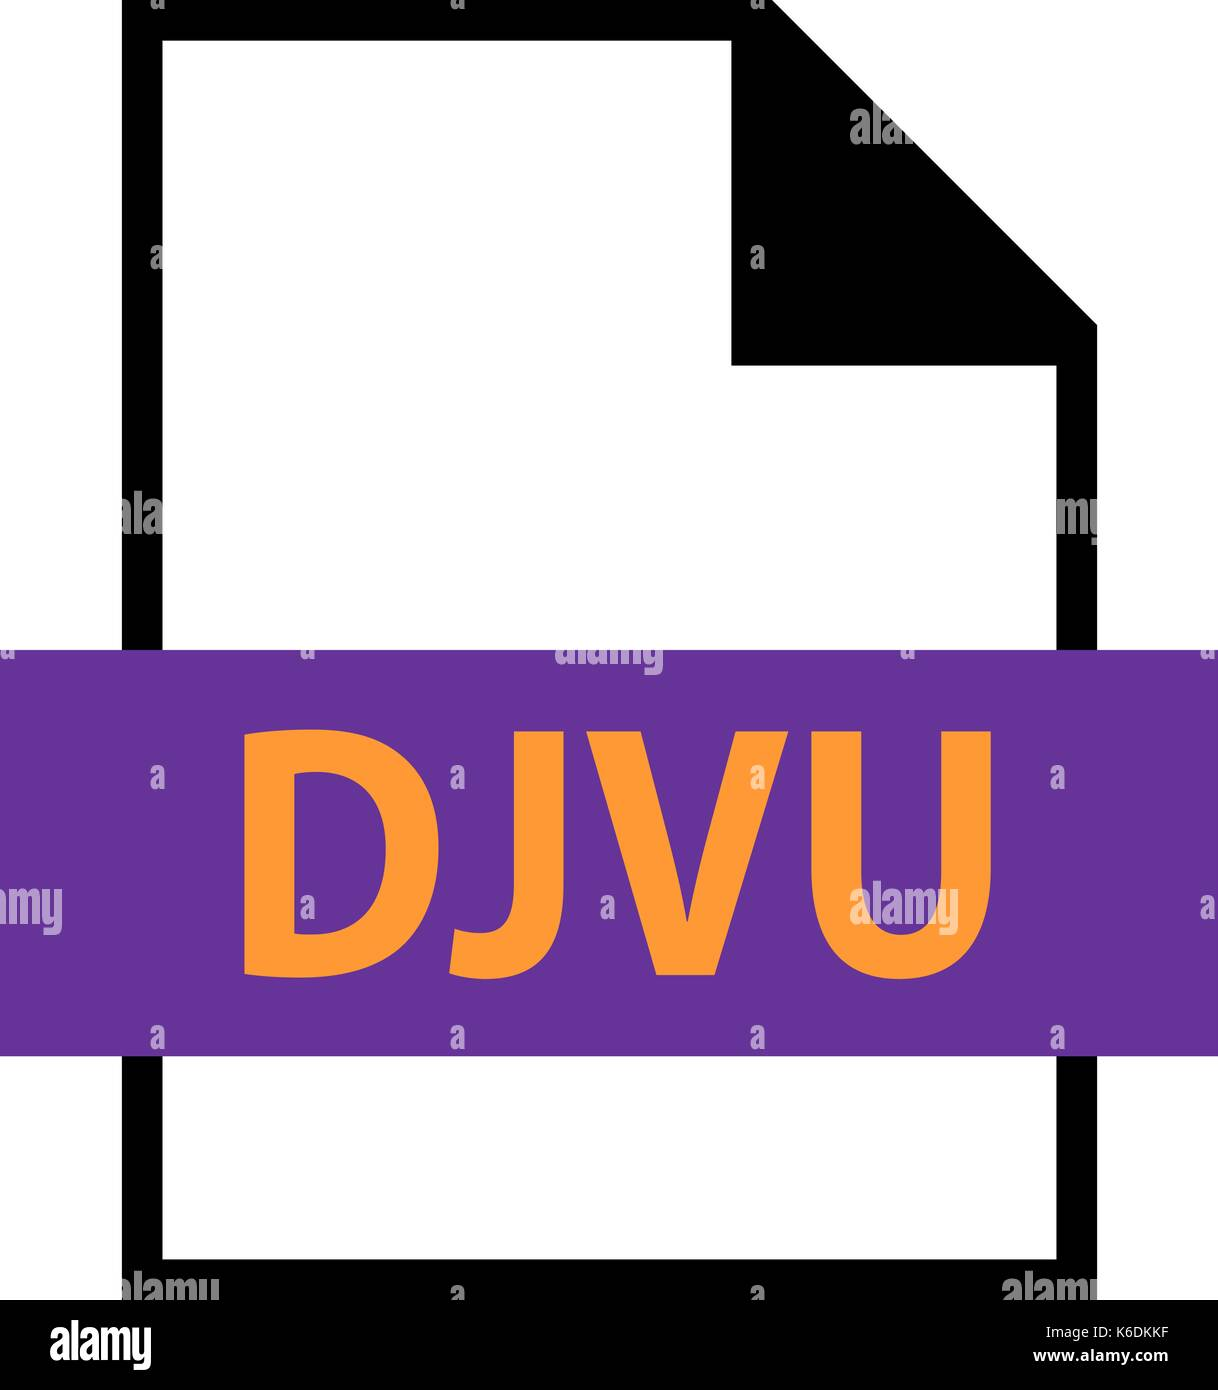 Use it in all your designs. Filename extension icon DJVU file format for scanned document in flat style. Quick and easy recolorable shape - Stock Image